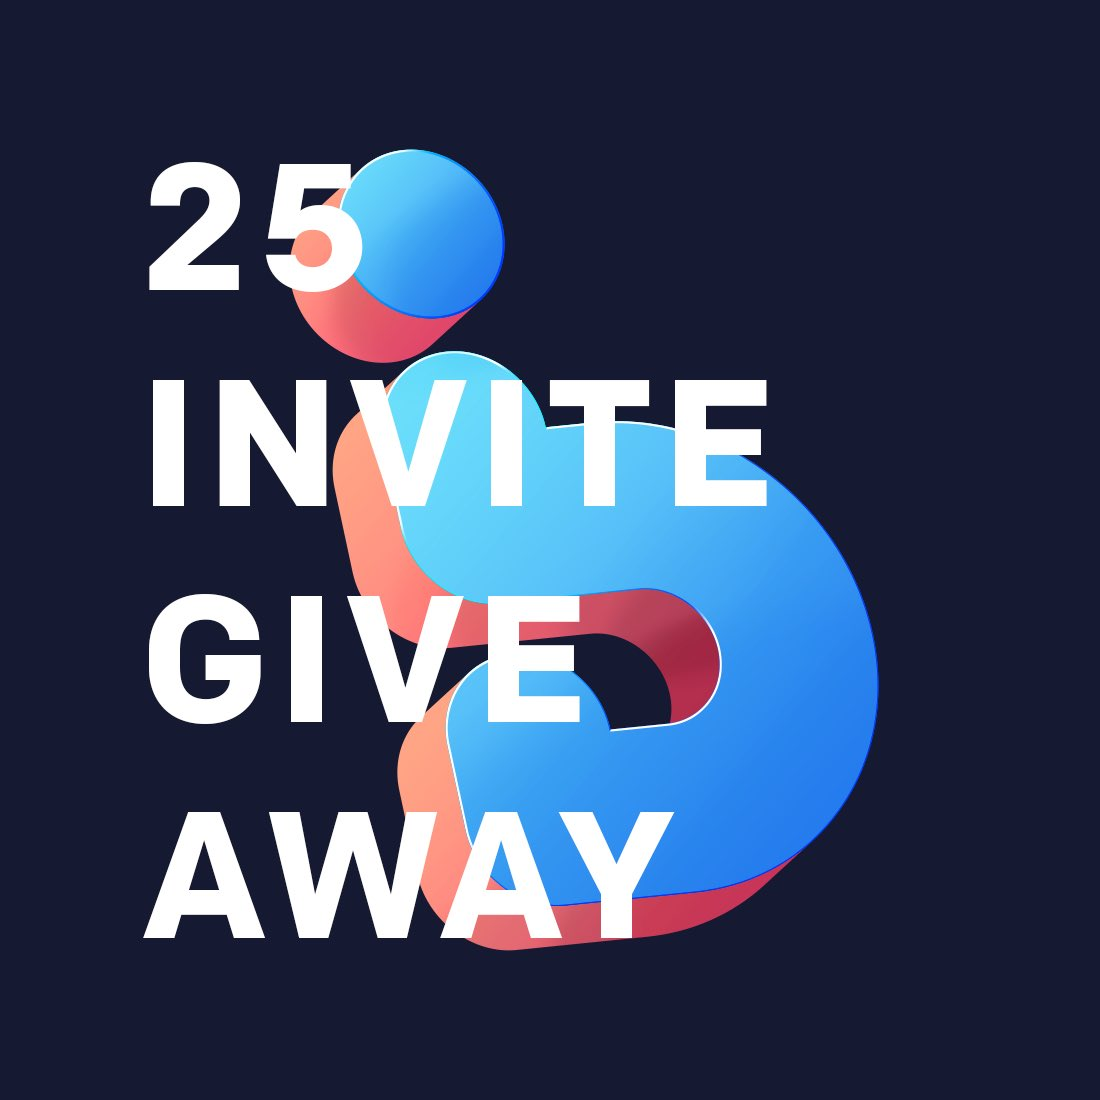 ?  April 2021 What Bot Invite Giveaway! At least 25 invites drawn Monday April 26th  TO ENTER: 1) Follow @whatbotisthis 2) RT this tweet  Thanks everyone and good luck! https://t.co/Hnx72A1c59